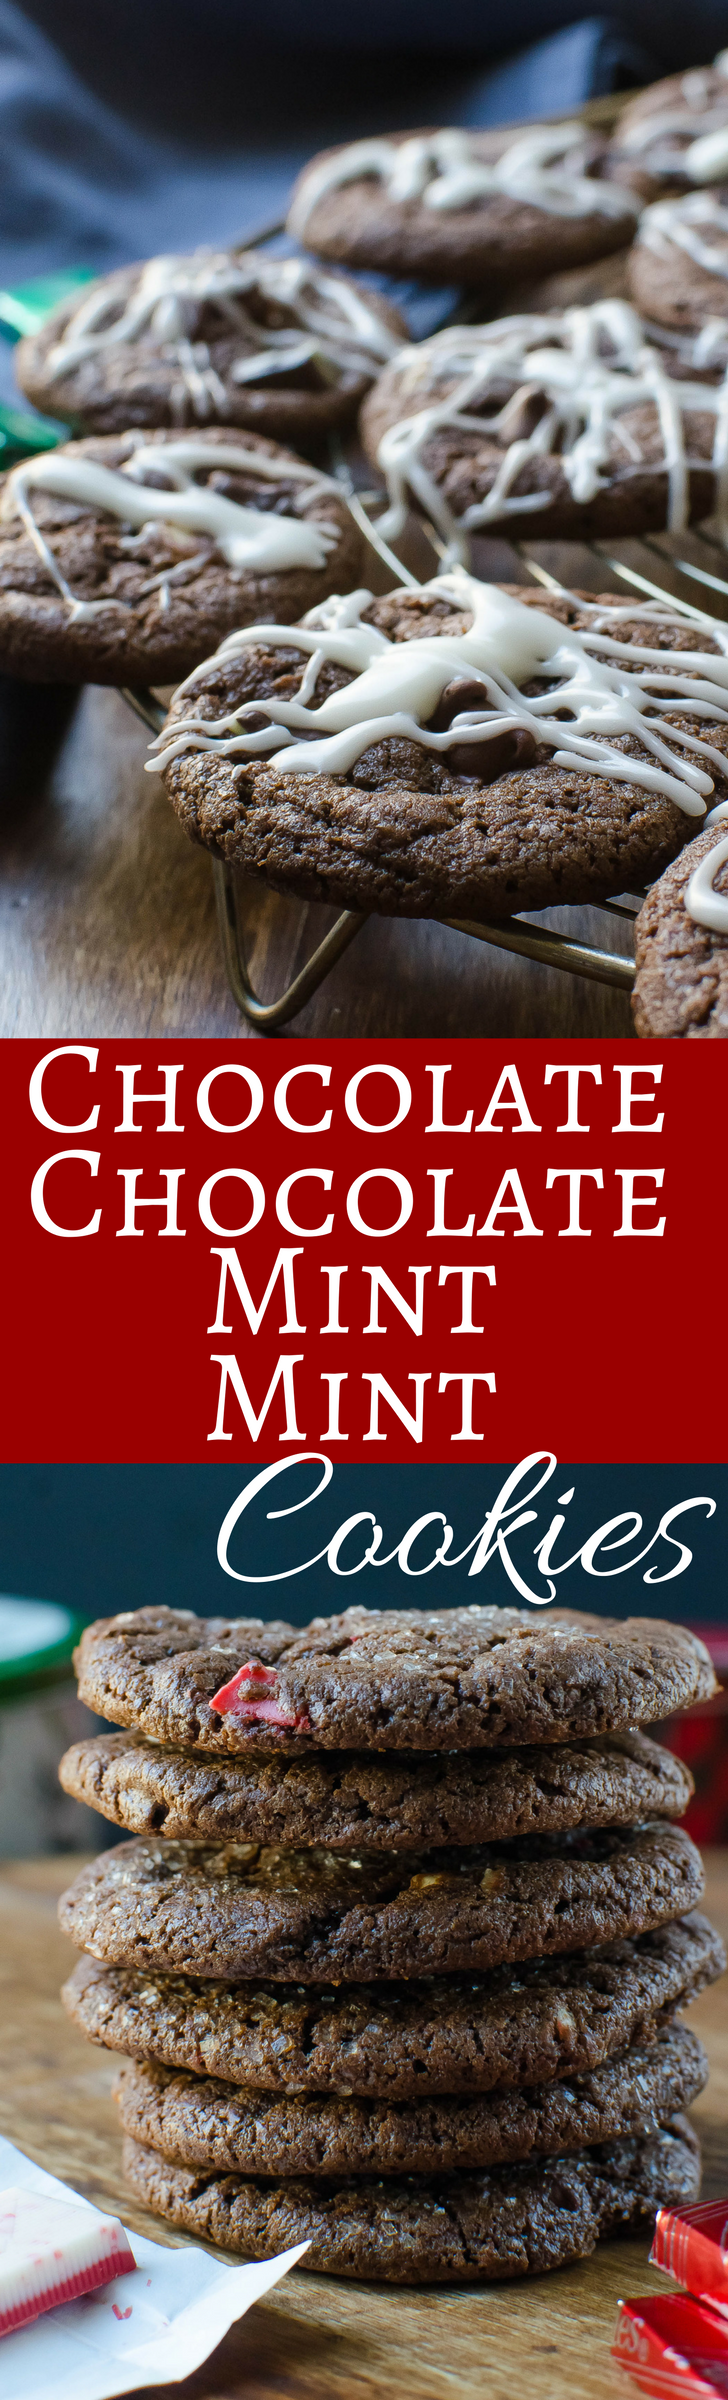 Two versions of the same deeply chocolatey, super minty cookie - using famed Andes Mints!